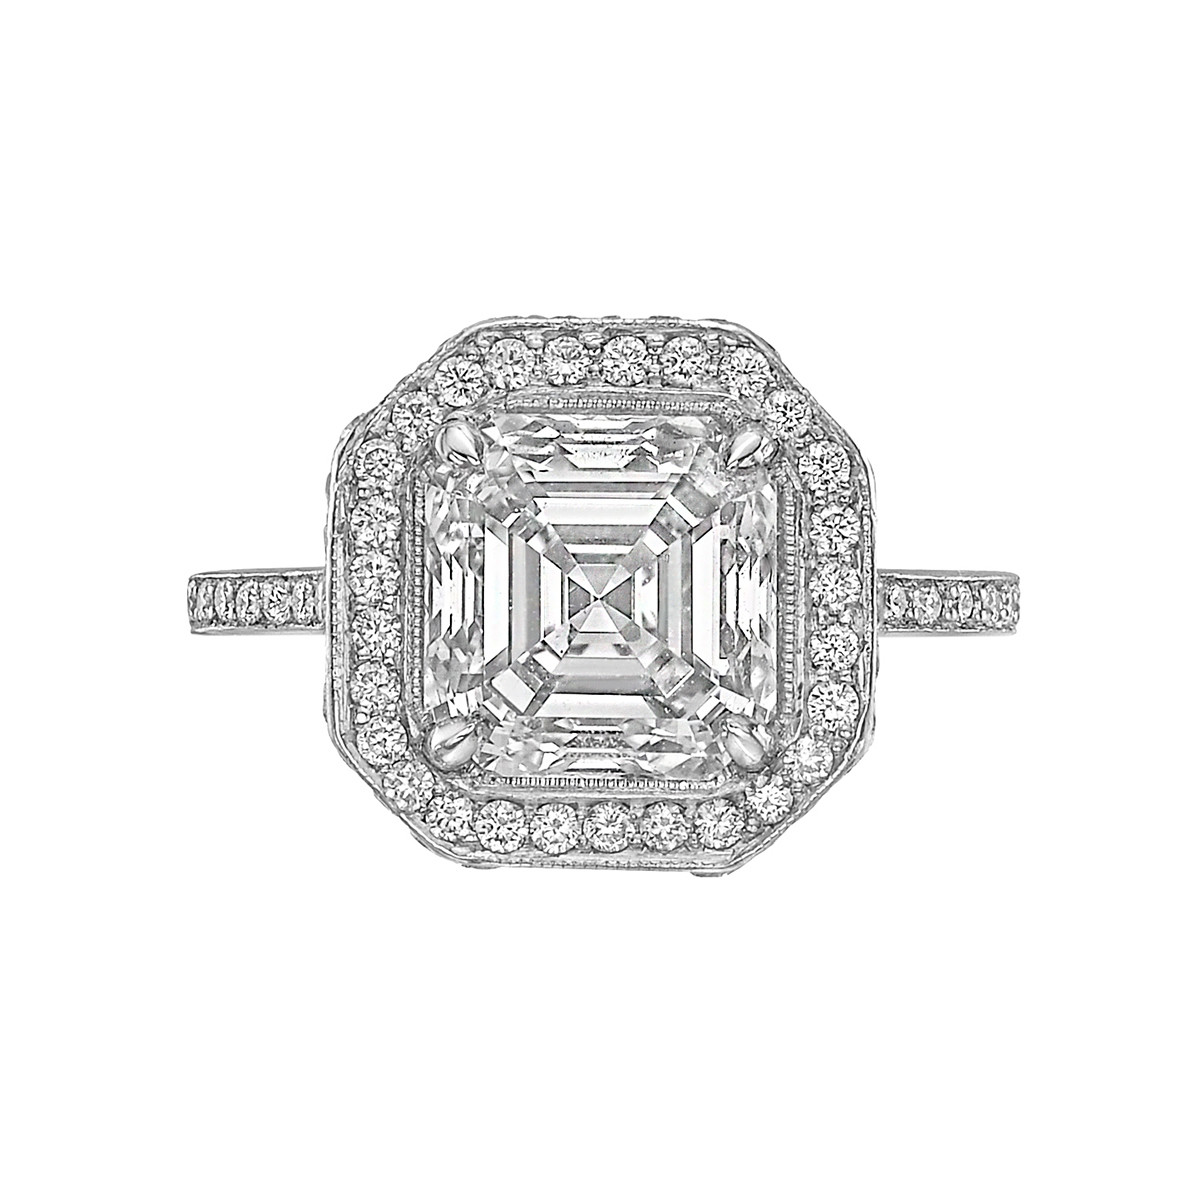 3.13ct Asscher-Cut Diamond Ring